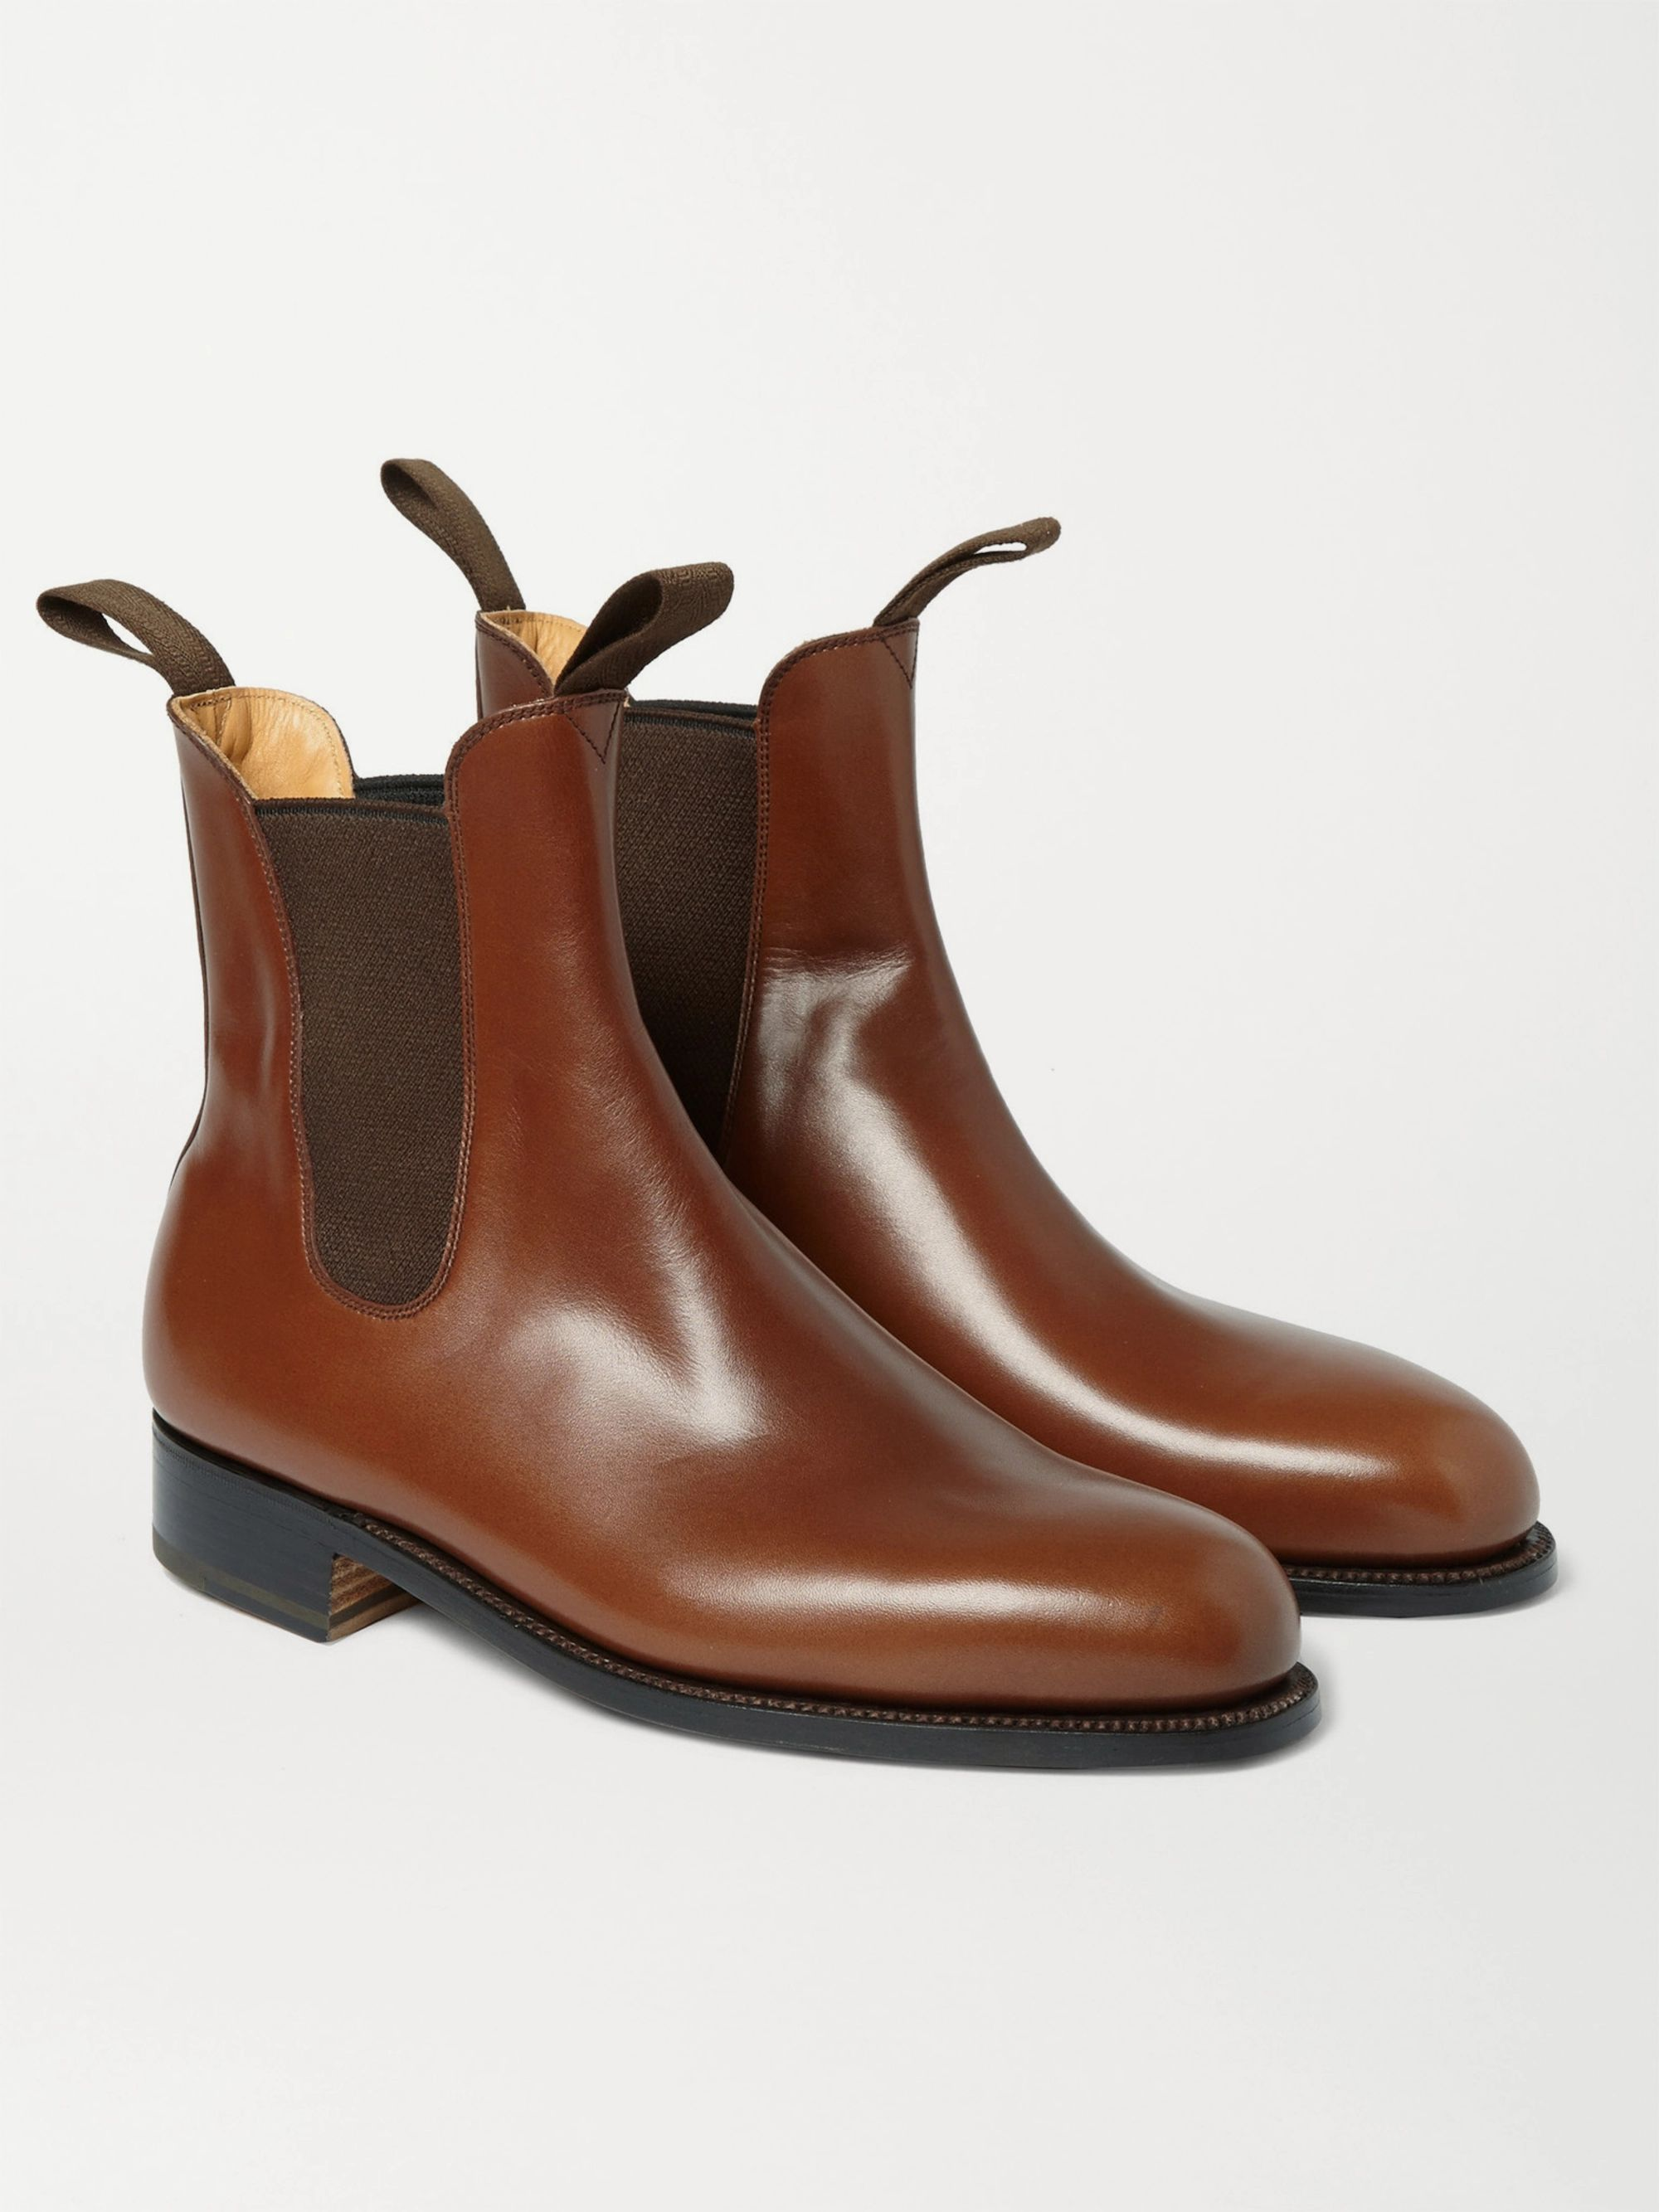 J.M. Weston Goodyear®-Welted Leather Chelsea Boots